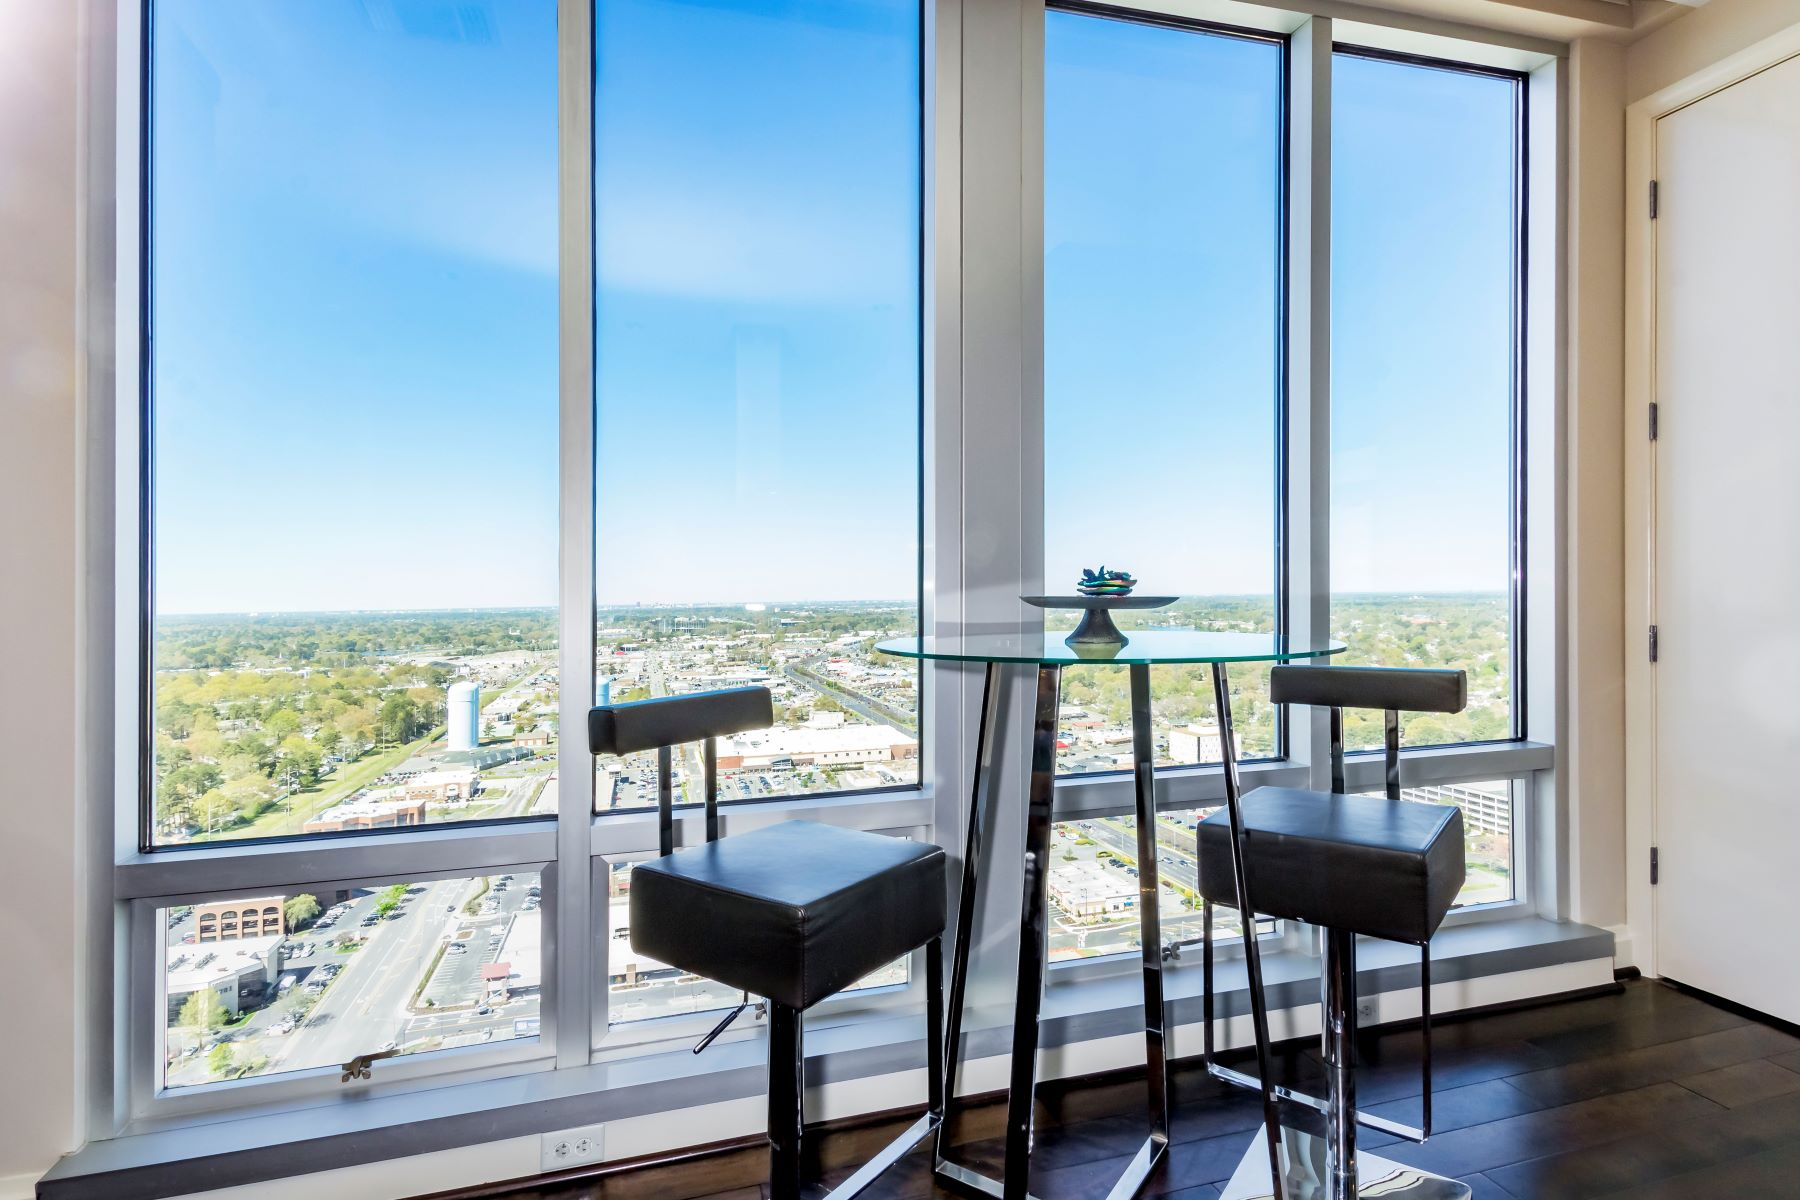 Additional photo for property listing at WESTIN RESIDENCES @ TOWN CENTER 4545 Commerce Street, #3601, Virginia Beach, Virginia 23462 United States